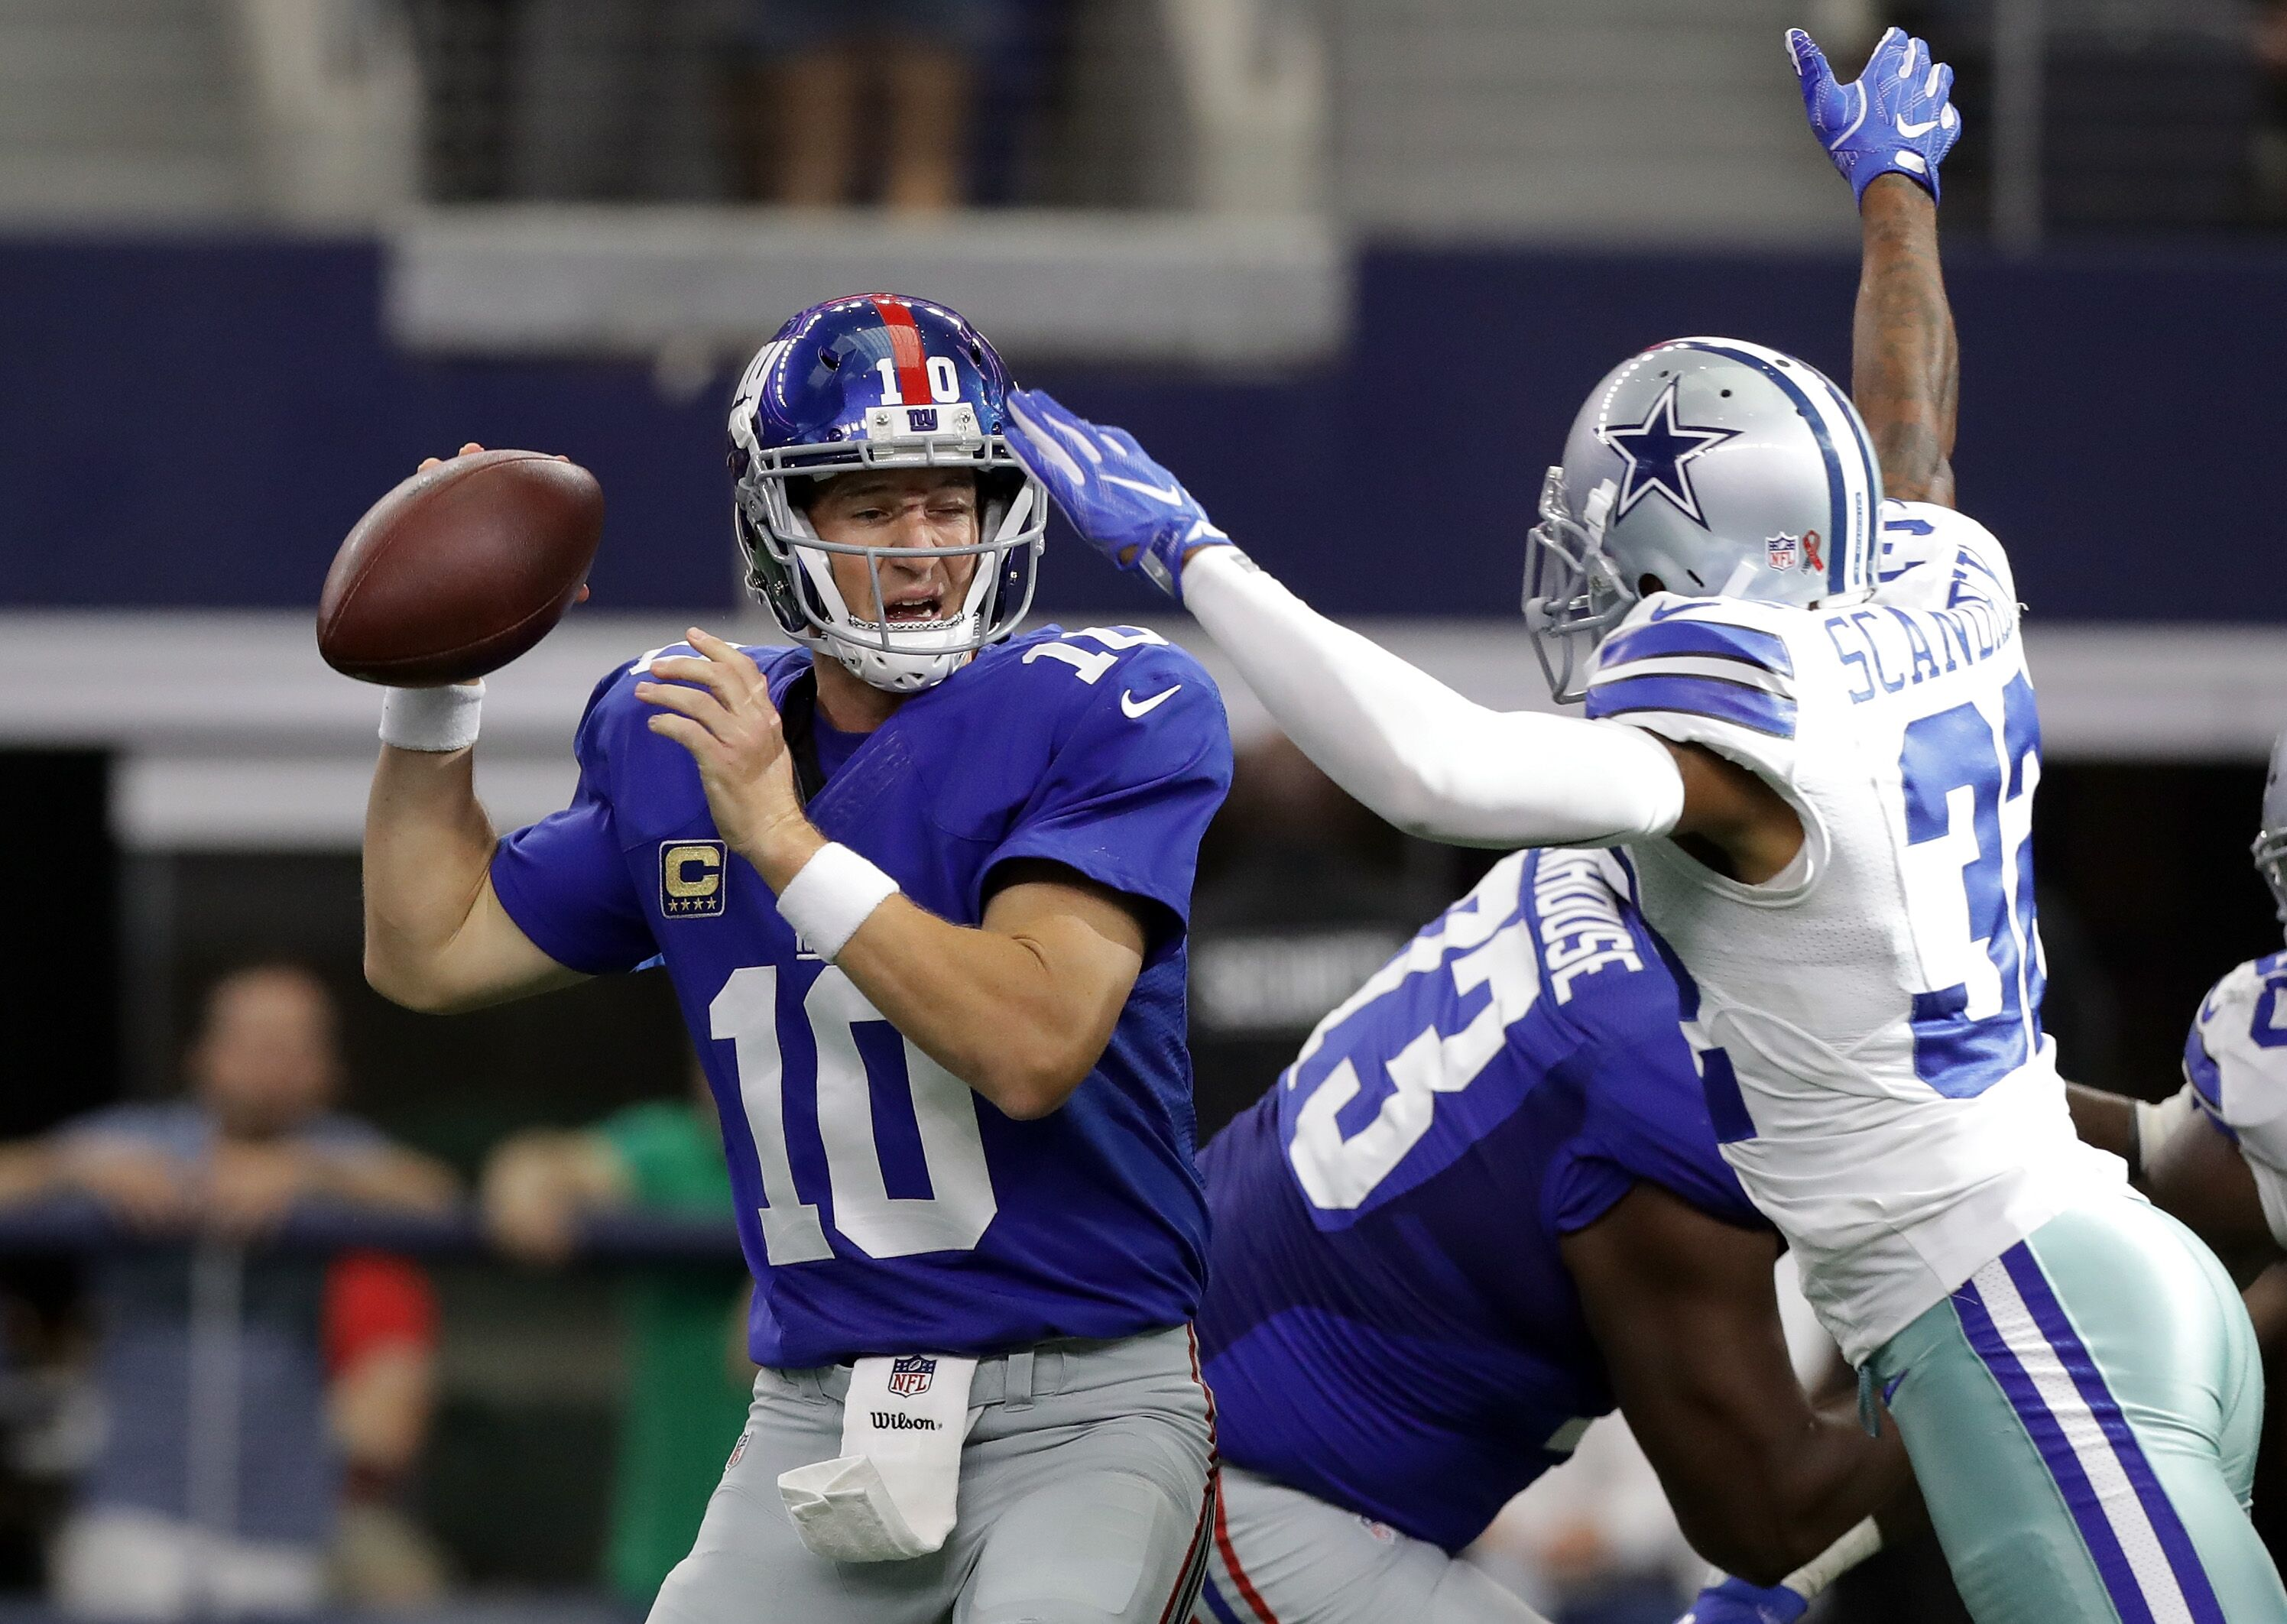 New York Giants at Dallas Cowboys: 5 Things to Watch For